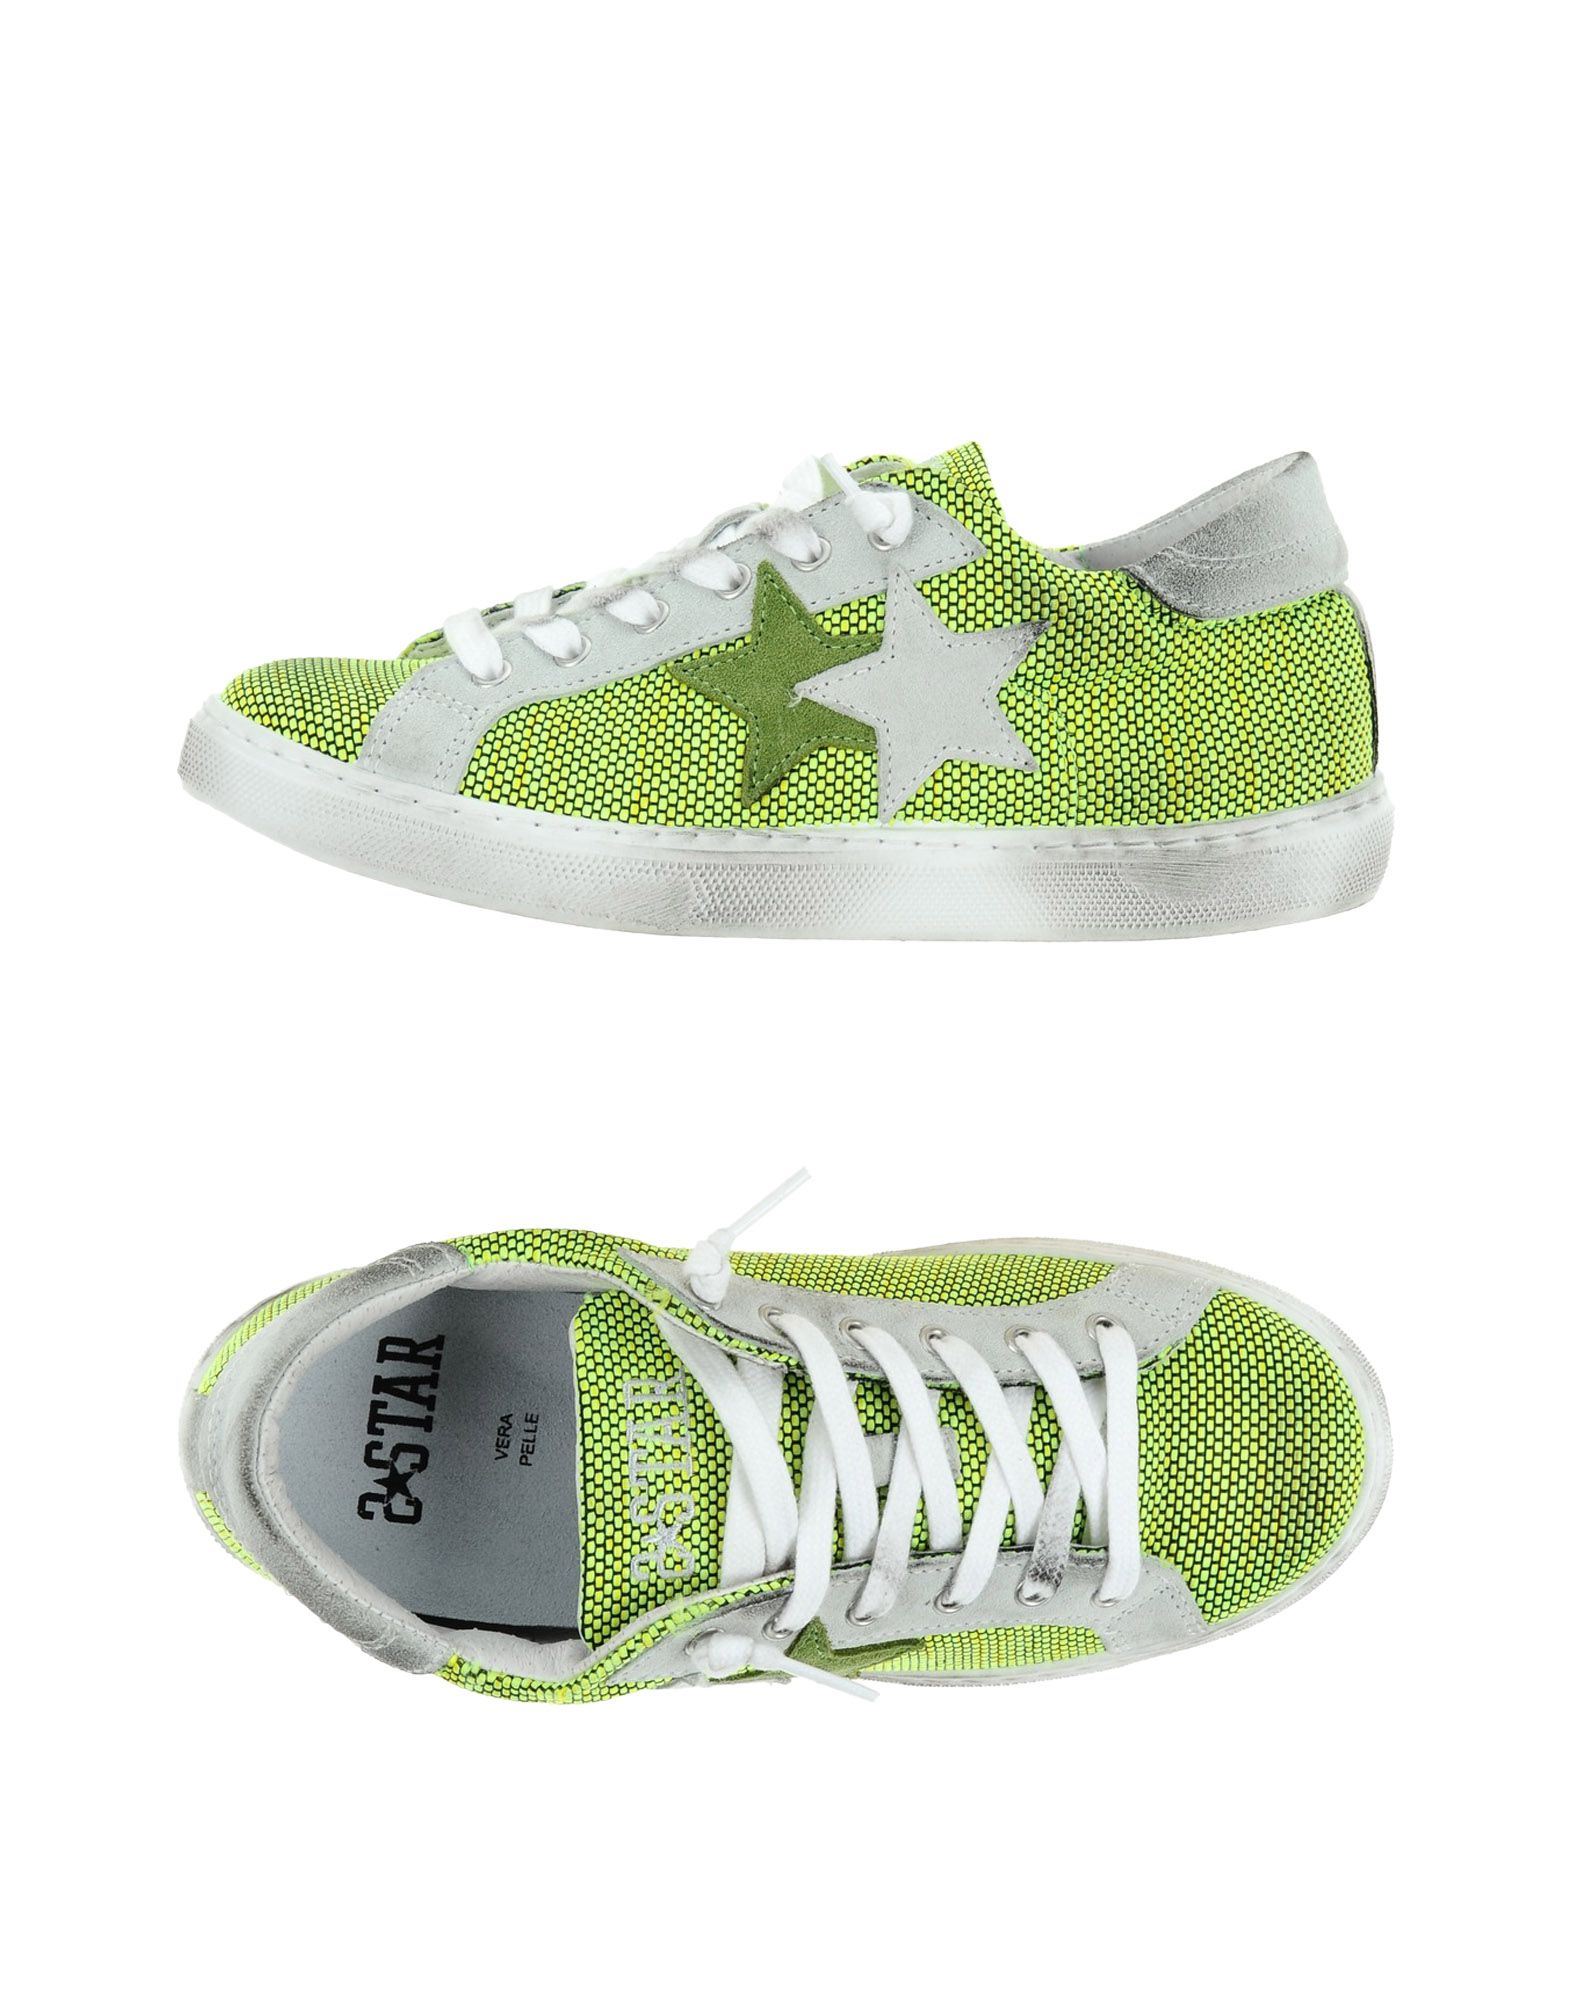 Moda Sneakers 2Star Donna Donna 2Star - 11336791FW 0551d4